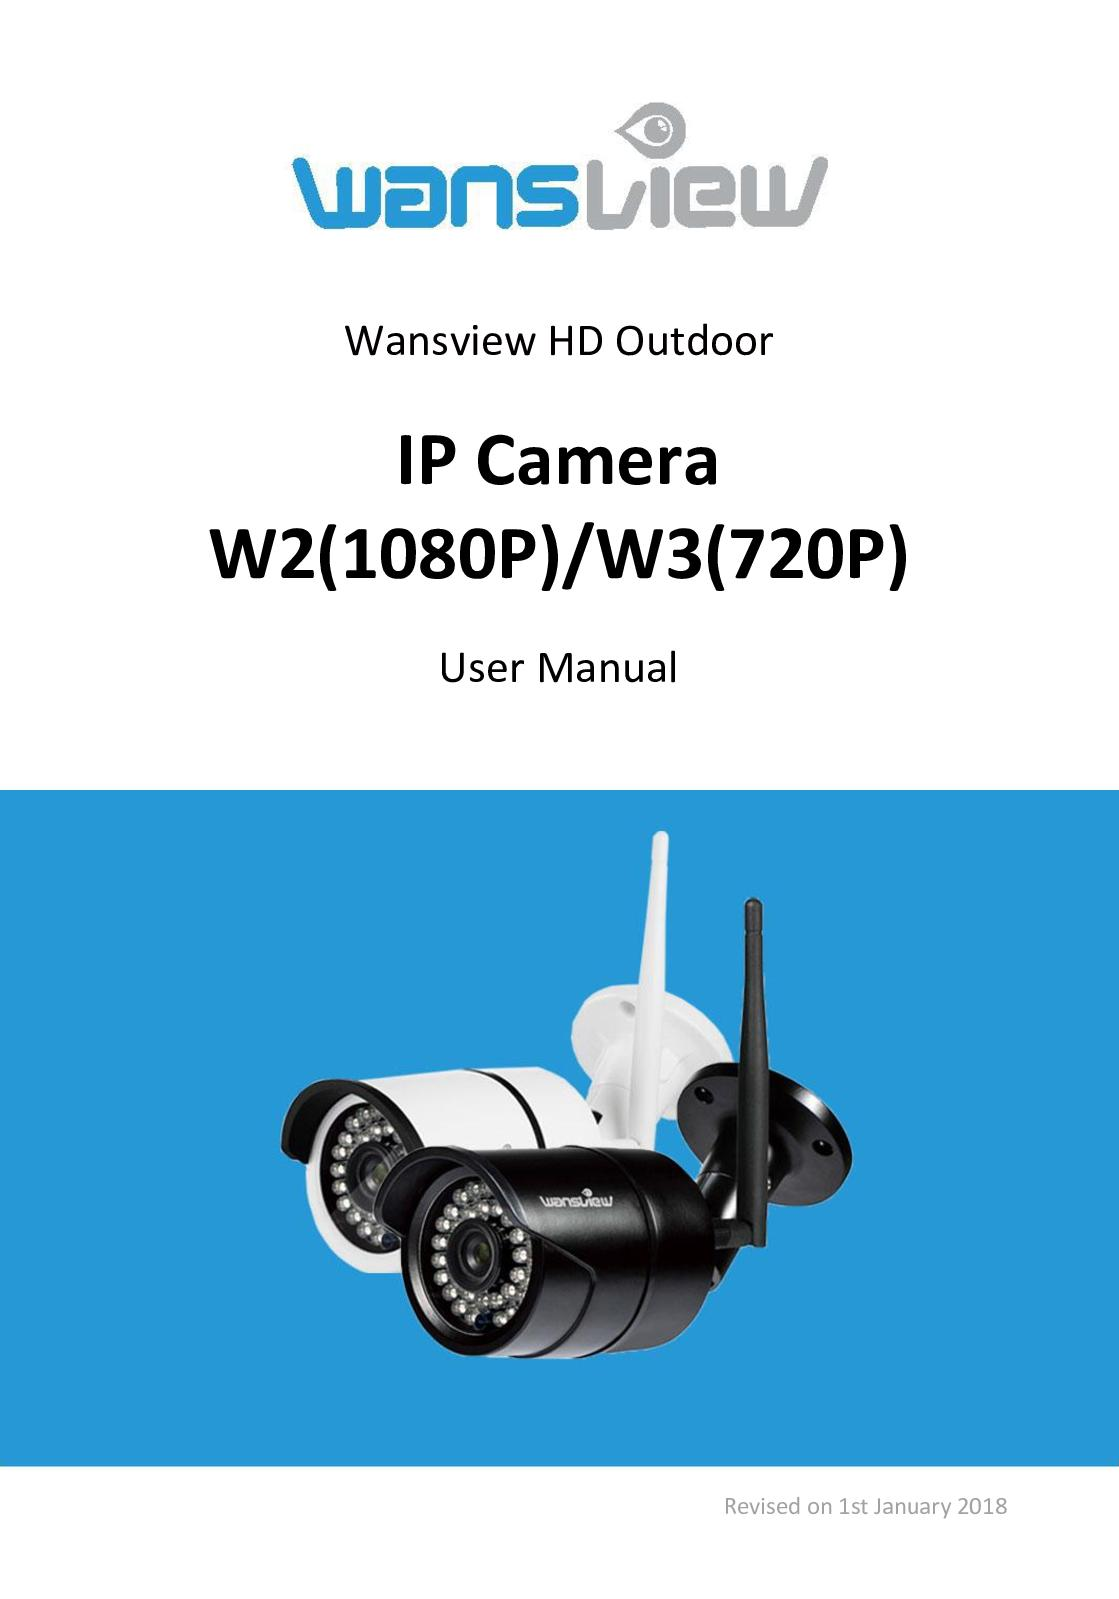 Calaméo - User Manual Of Wansview Outdoor Camera W2 & W3